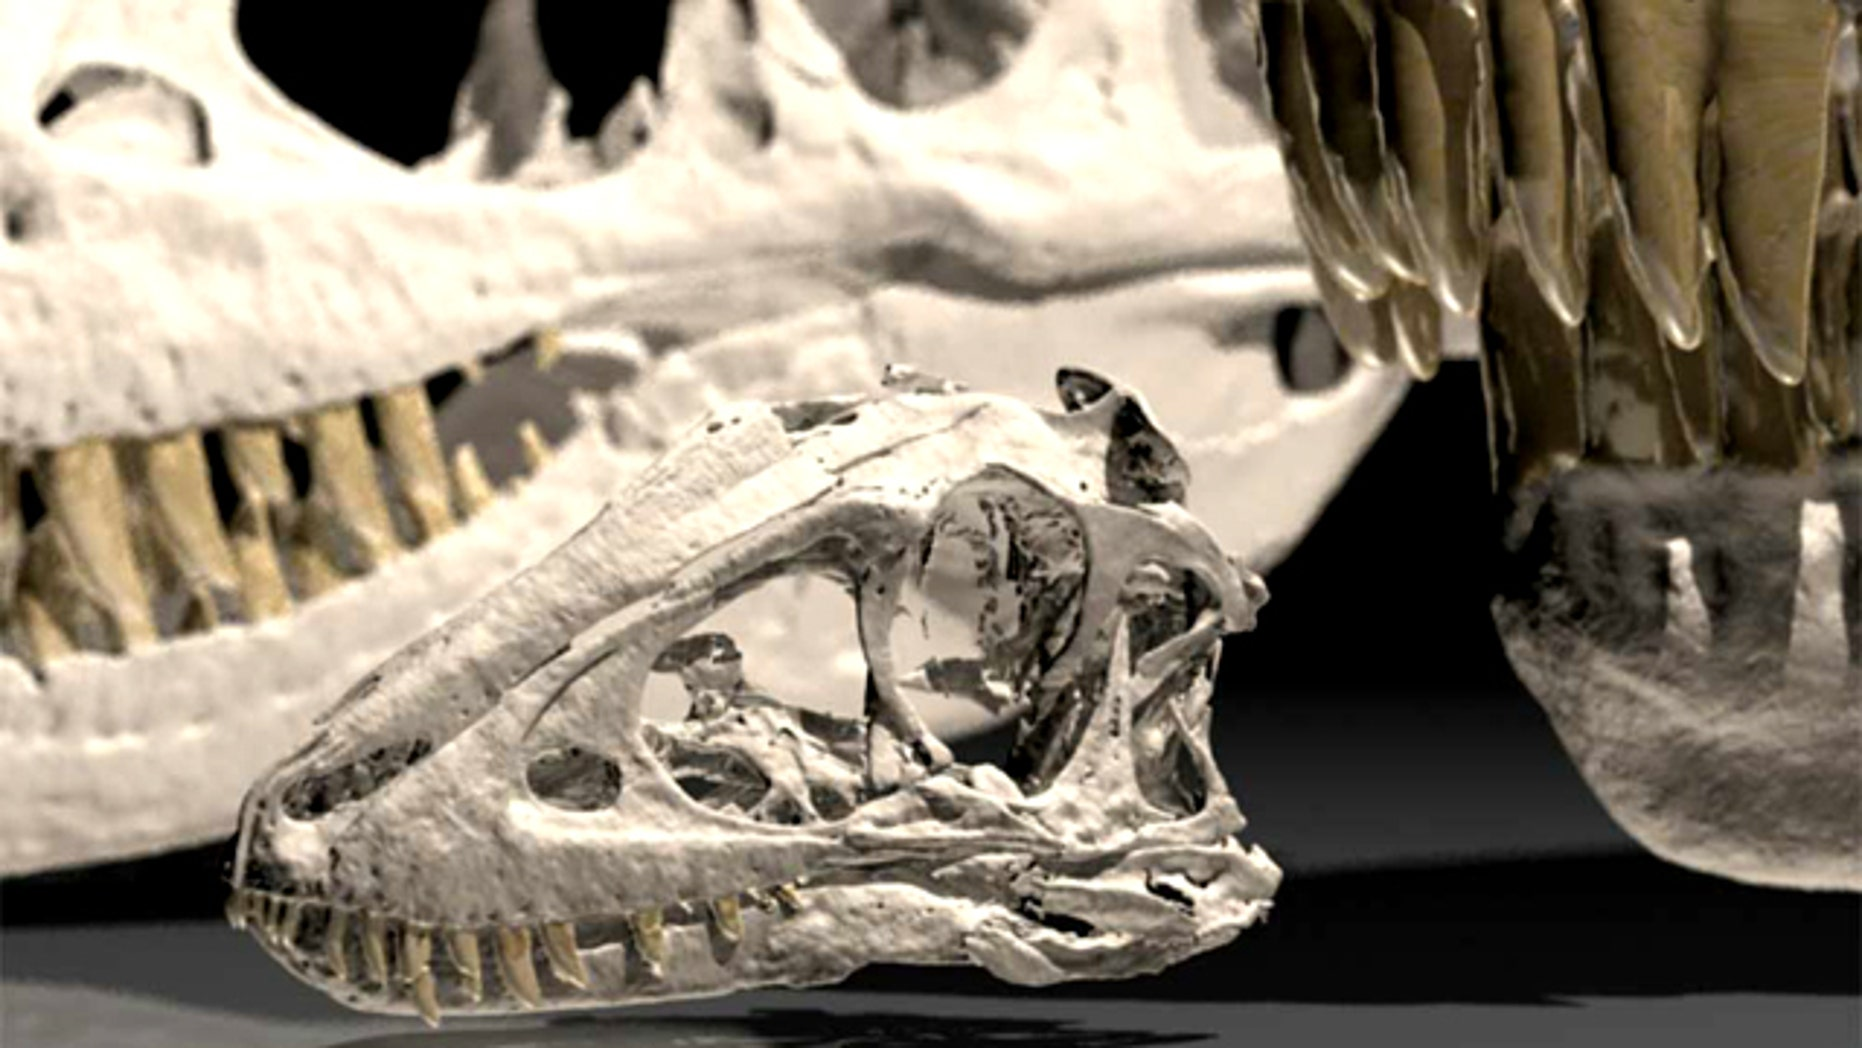 Skull of a 2-year-old juvenile Tarbosaurus, a Cretaceous tyrannosaur from Mongolia, with an adult skull at right and a teenage skull behind for comparison.